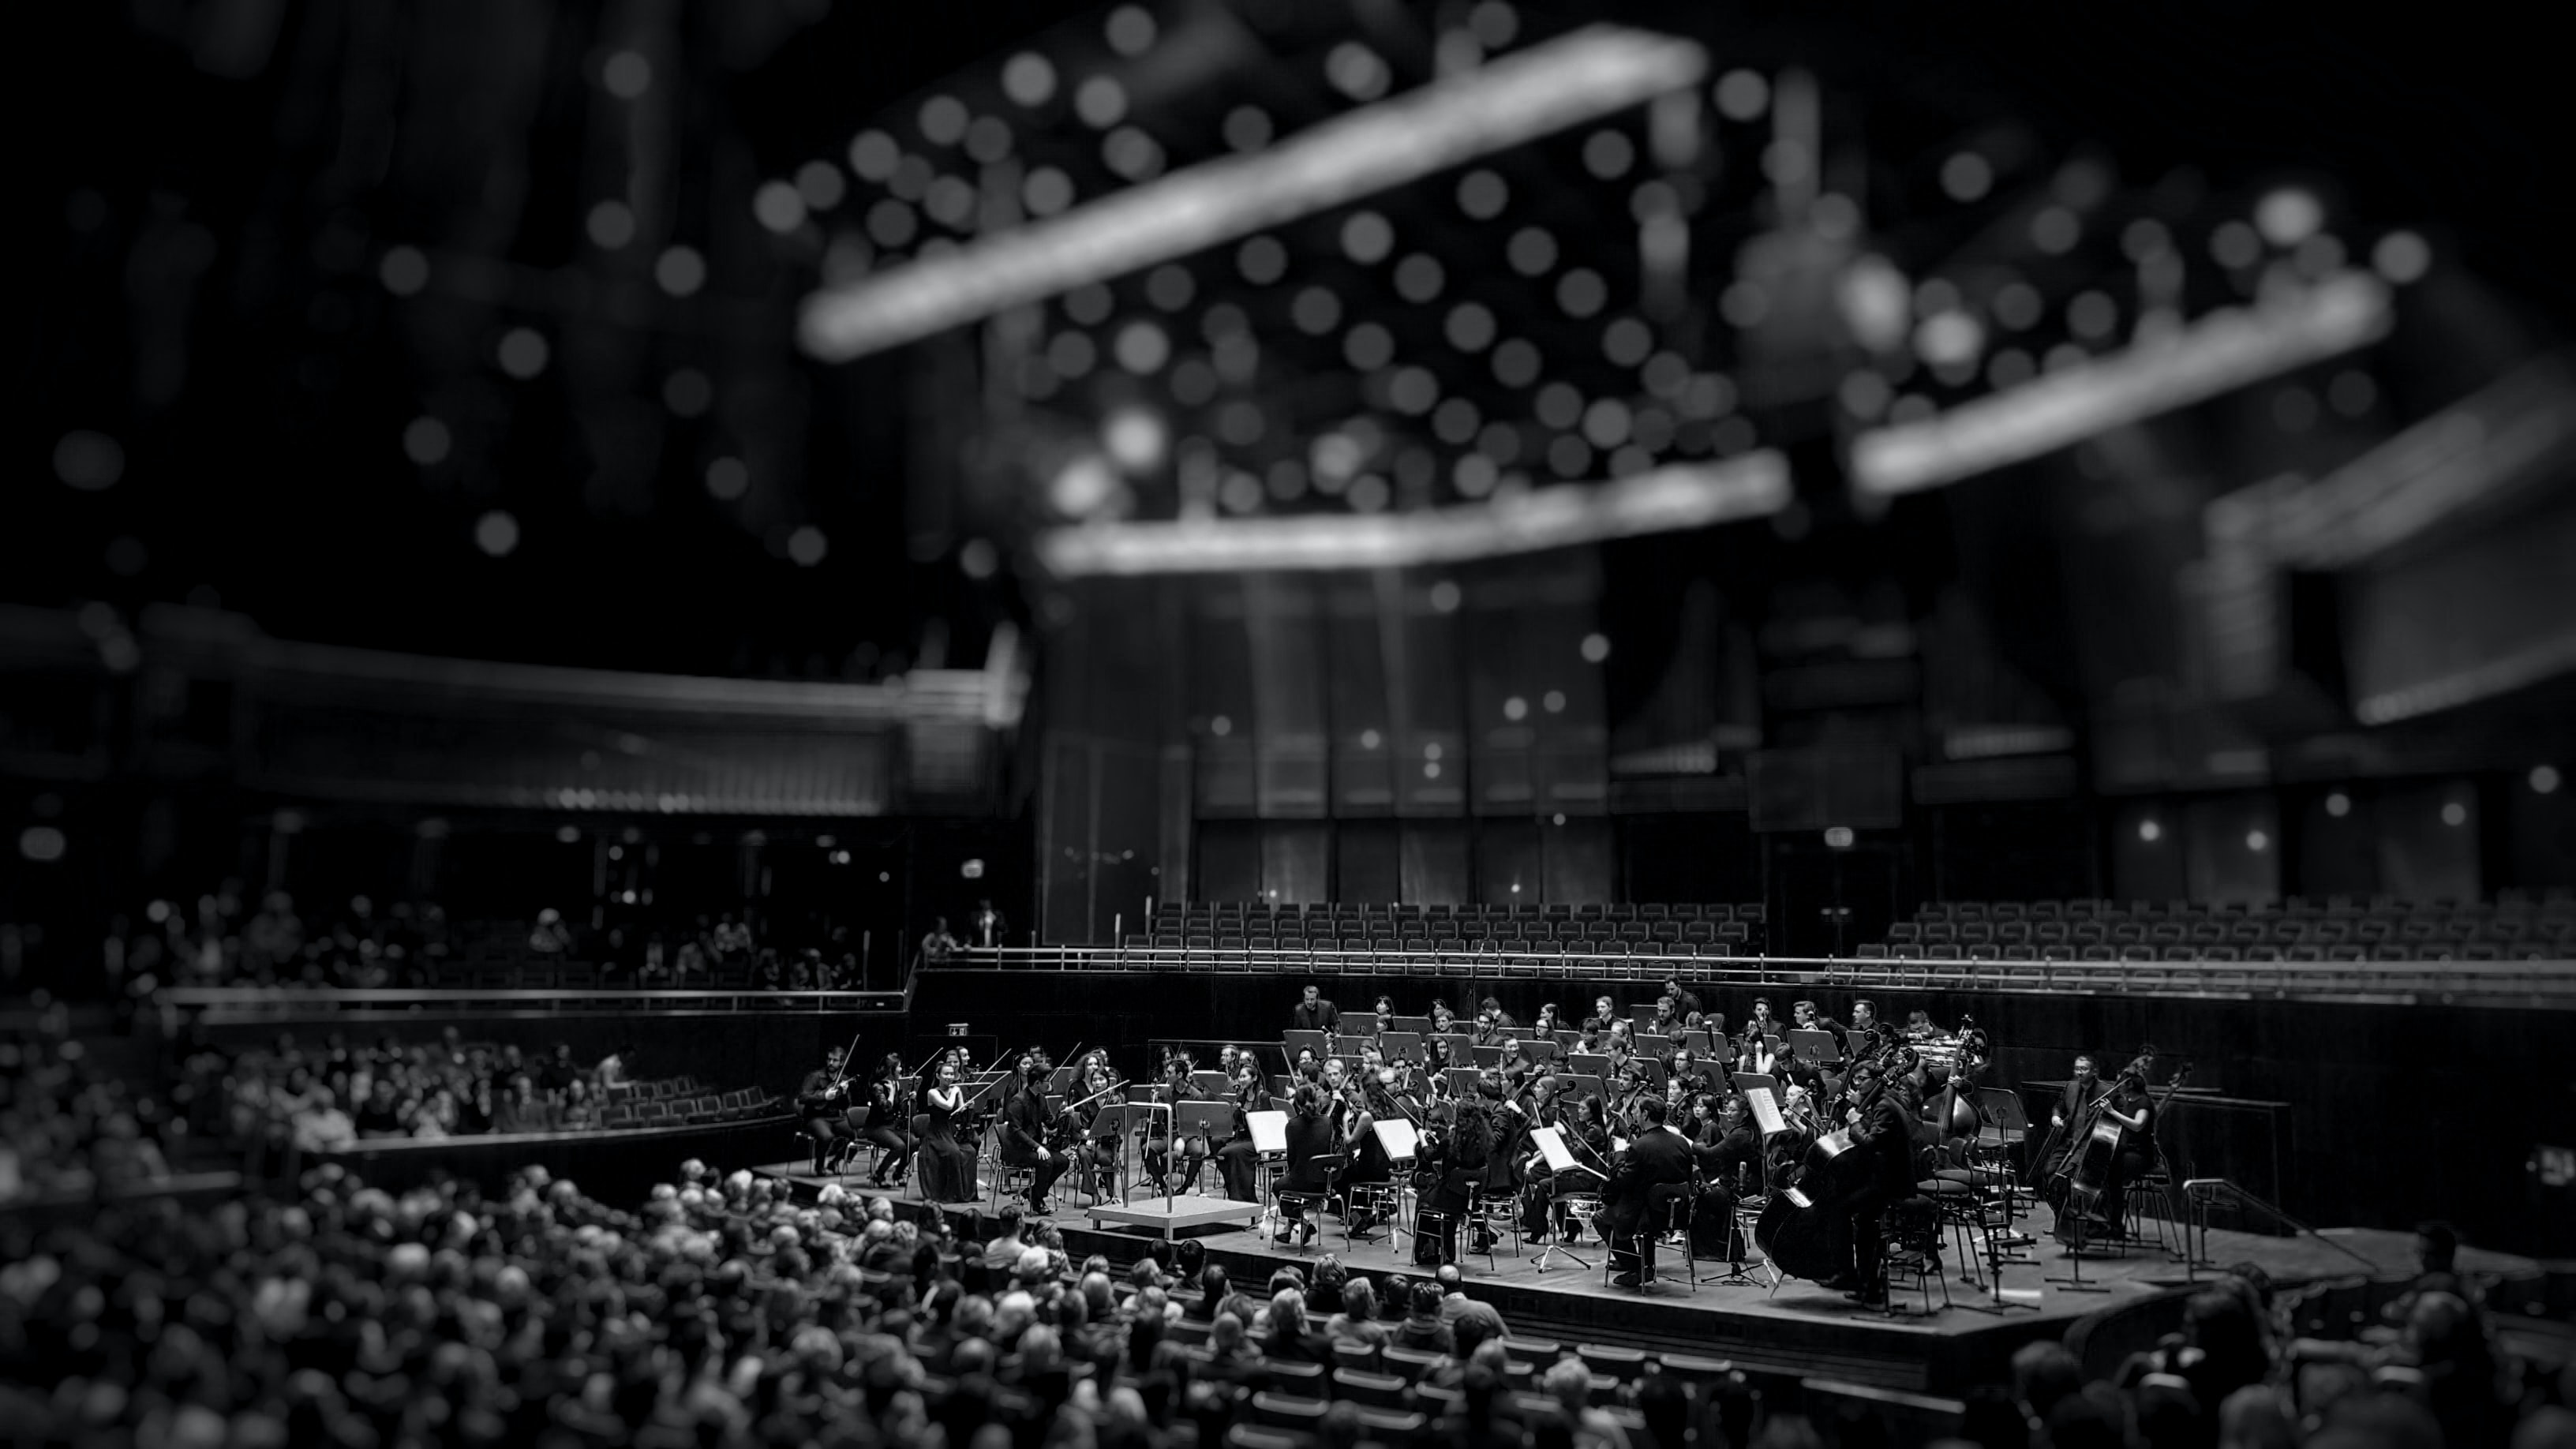 A grayscale photo of an orchestra with no conductor inside an auditorium.